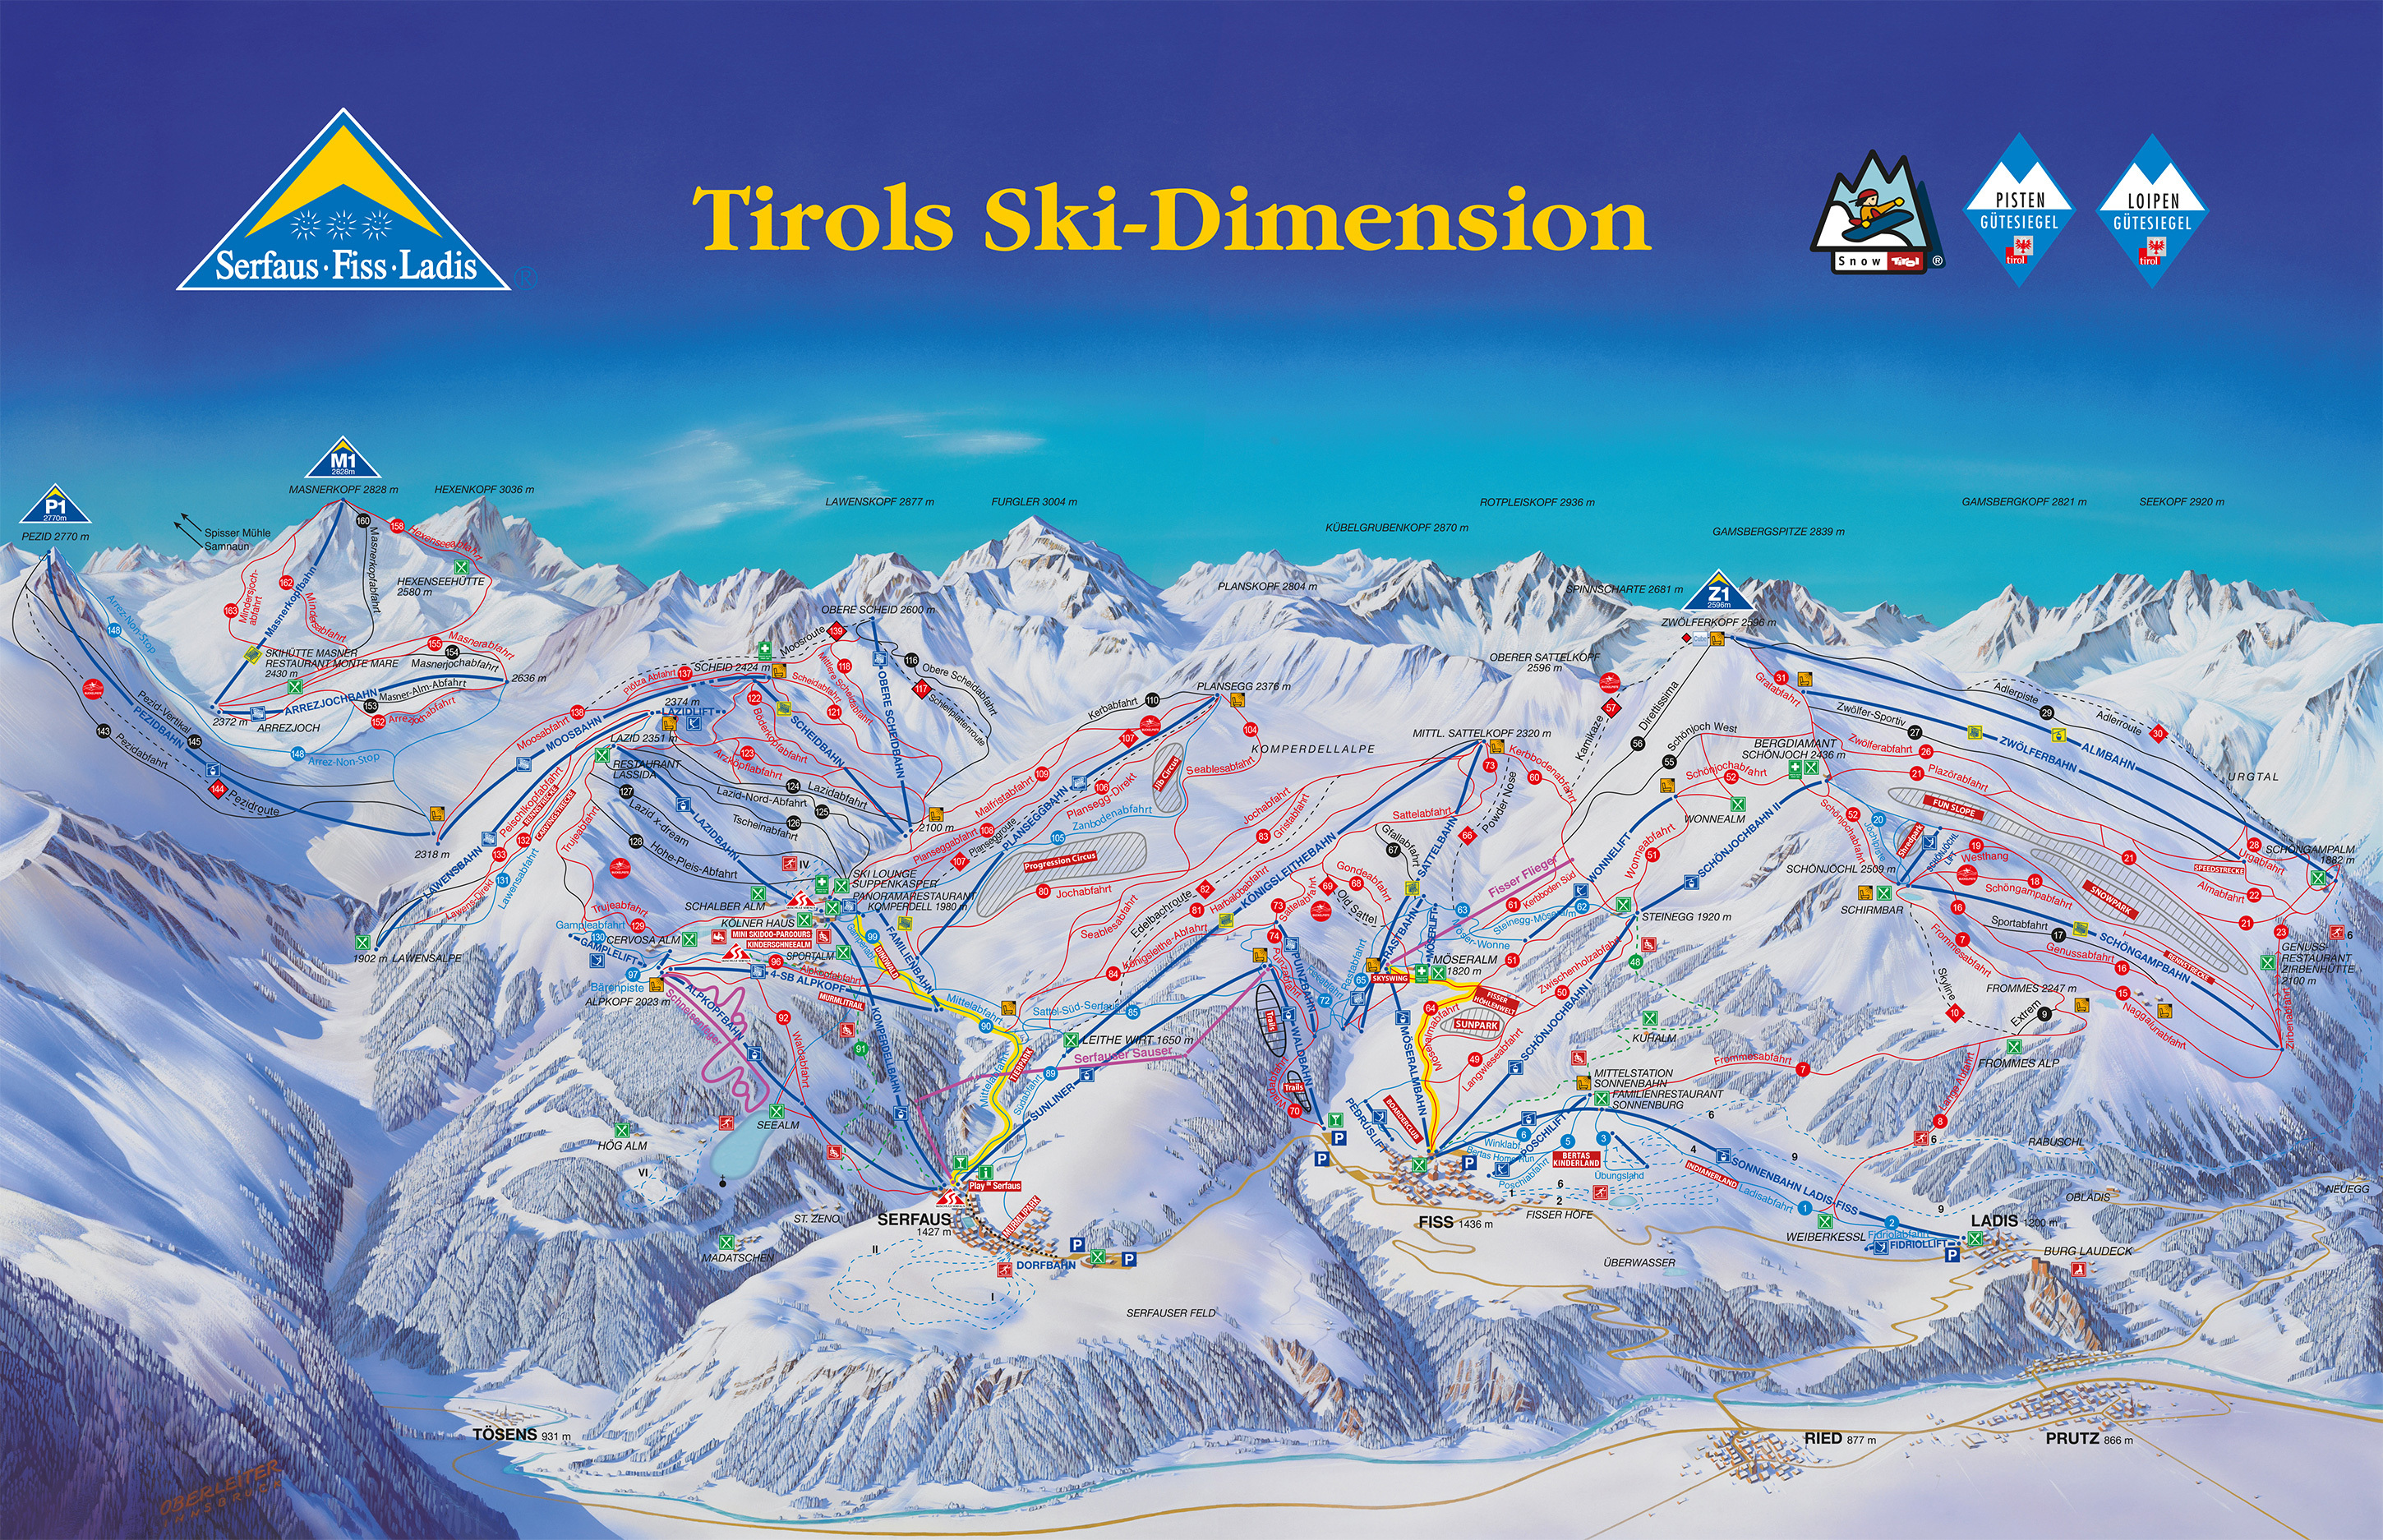 Serfaus Piste / Trail Map